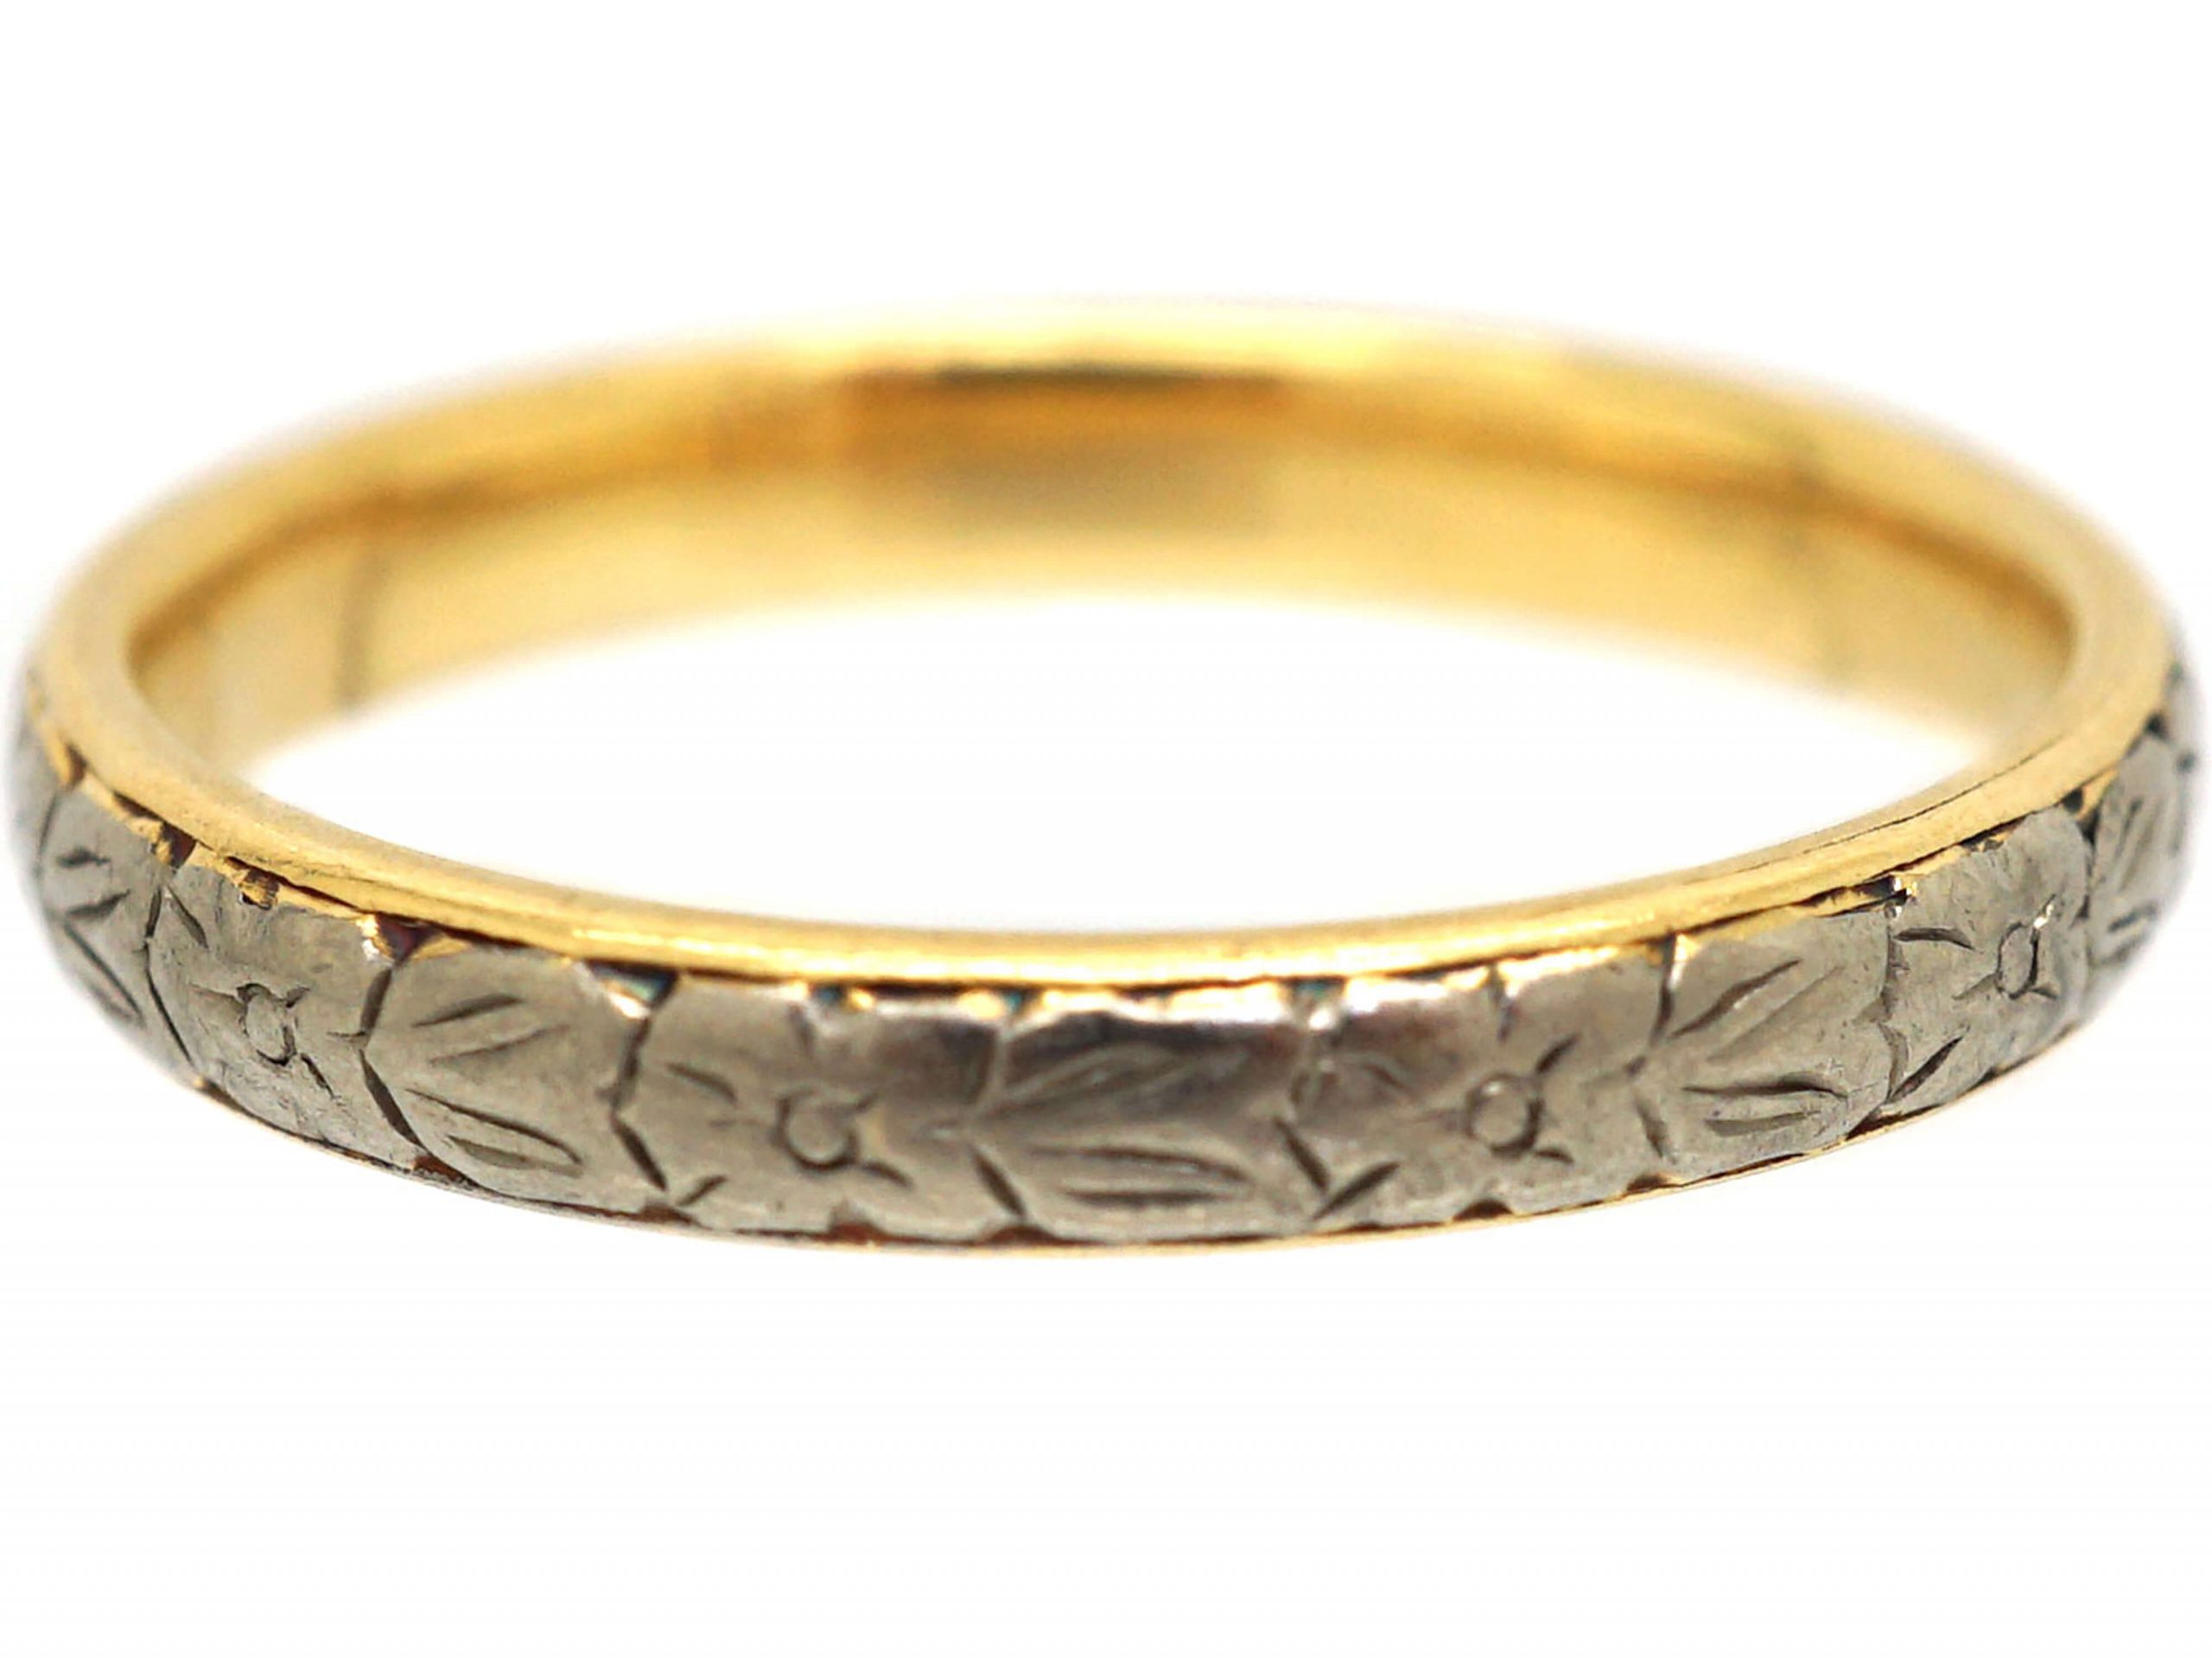 18ct White & Yellow Gold Wedding Ring with Flower Detail